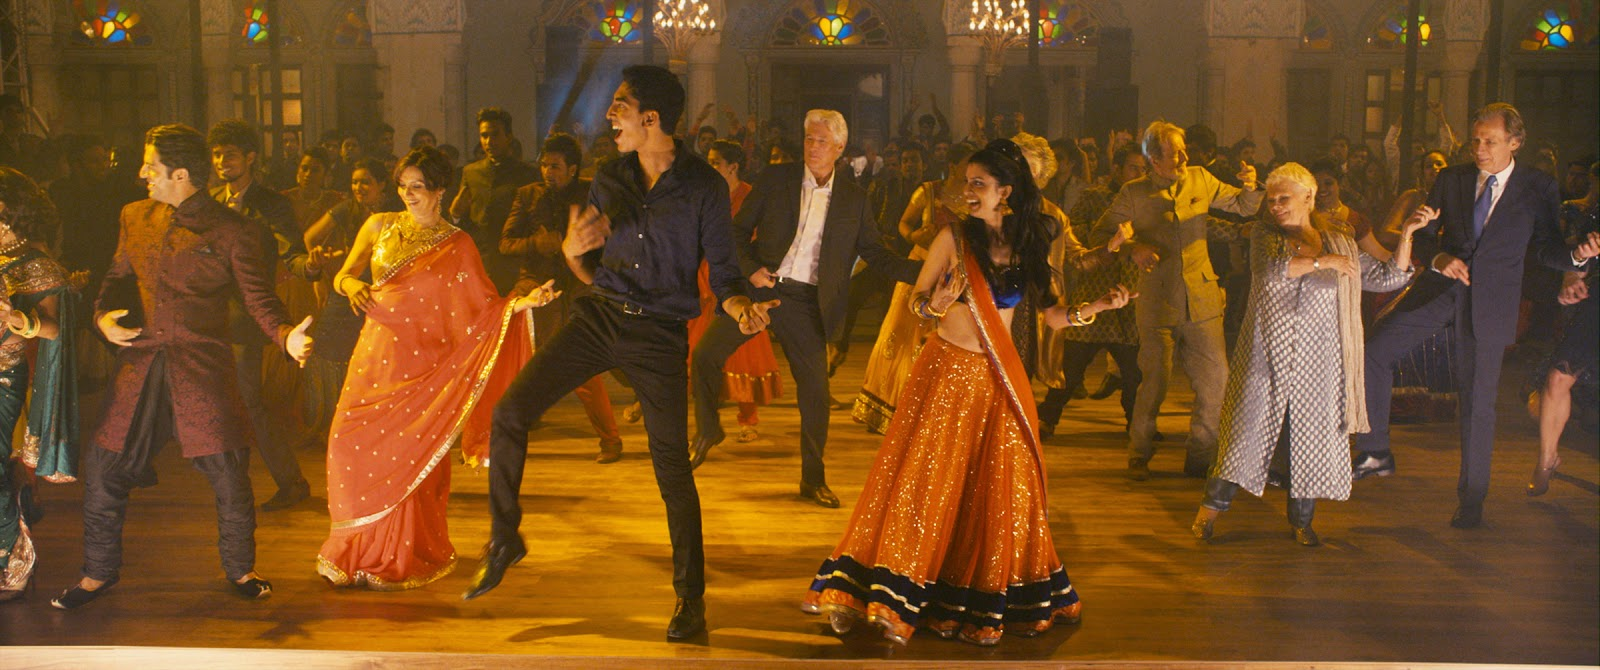 Cast of The Second Best Exotic Marigold Hotel